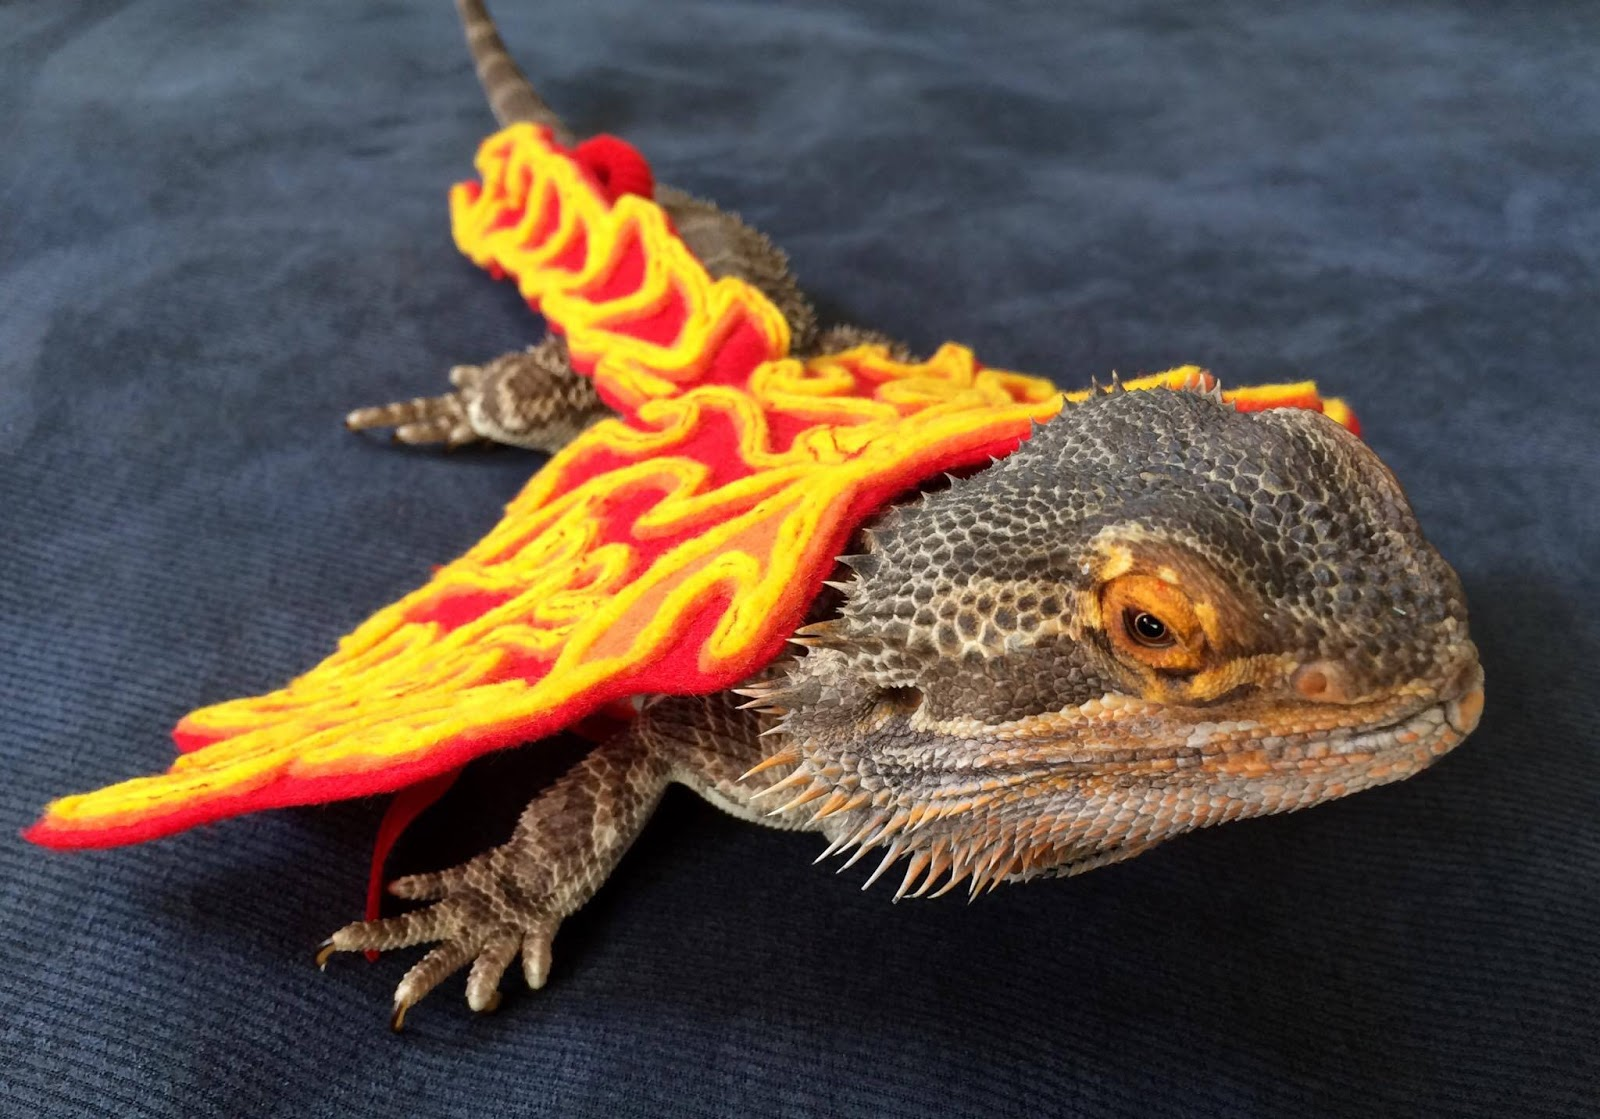 Two New Deluxe Etsy Costumes. Fire Dragon Wings & Sarahu0027s Bearded Dragon Rescue: Two New Deluxe Etsy Costumes